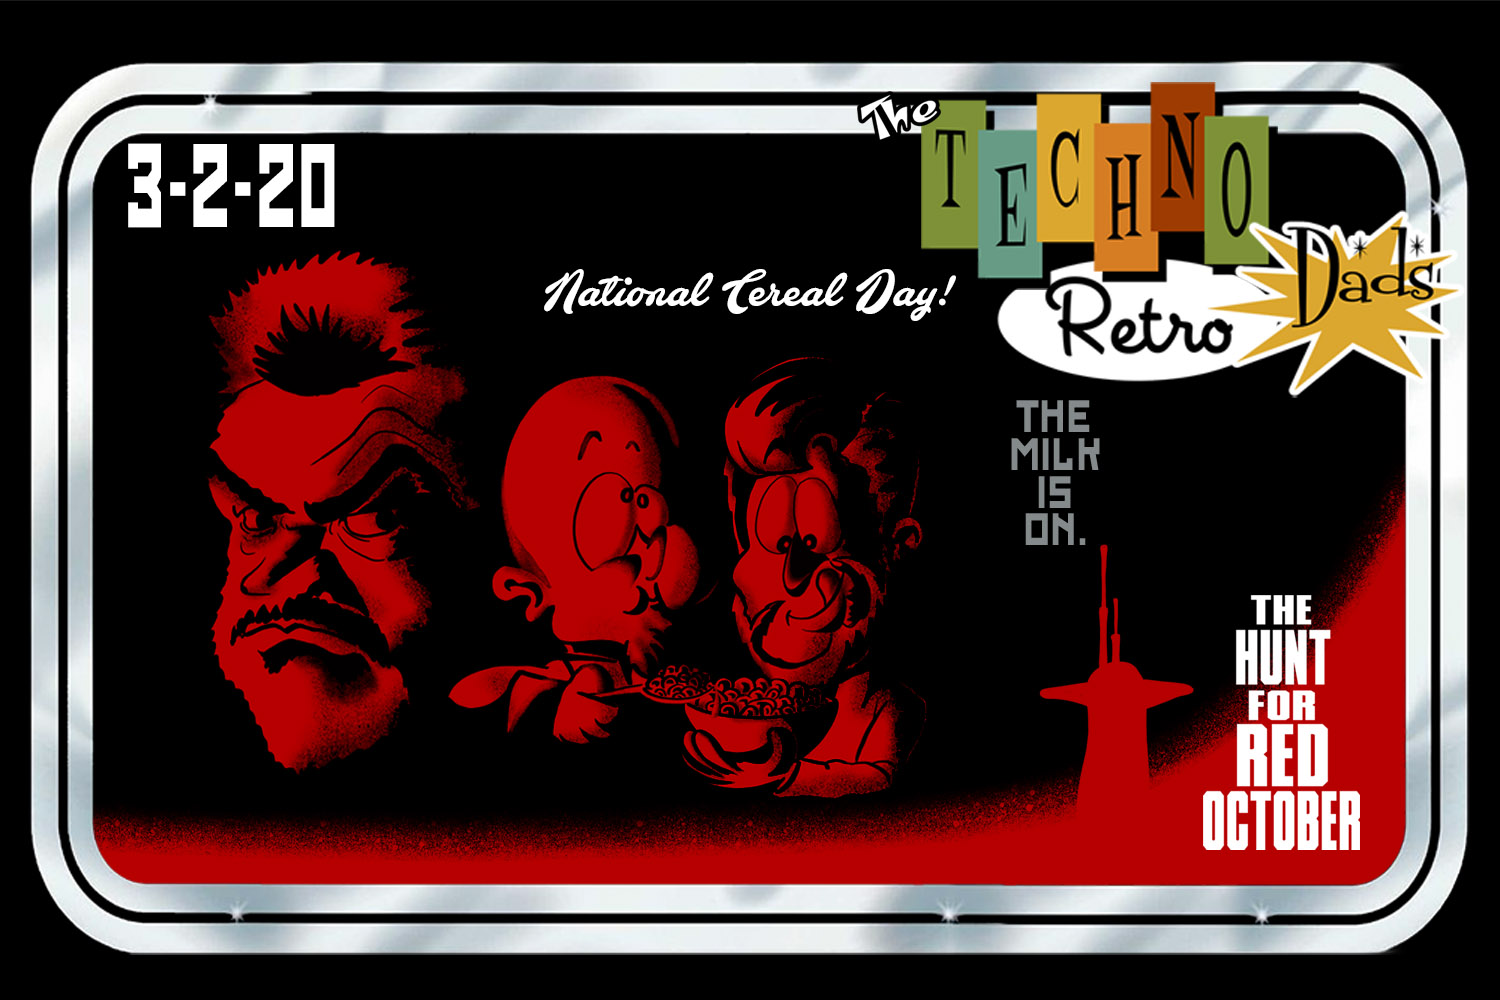 Red October Cereal Day